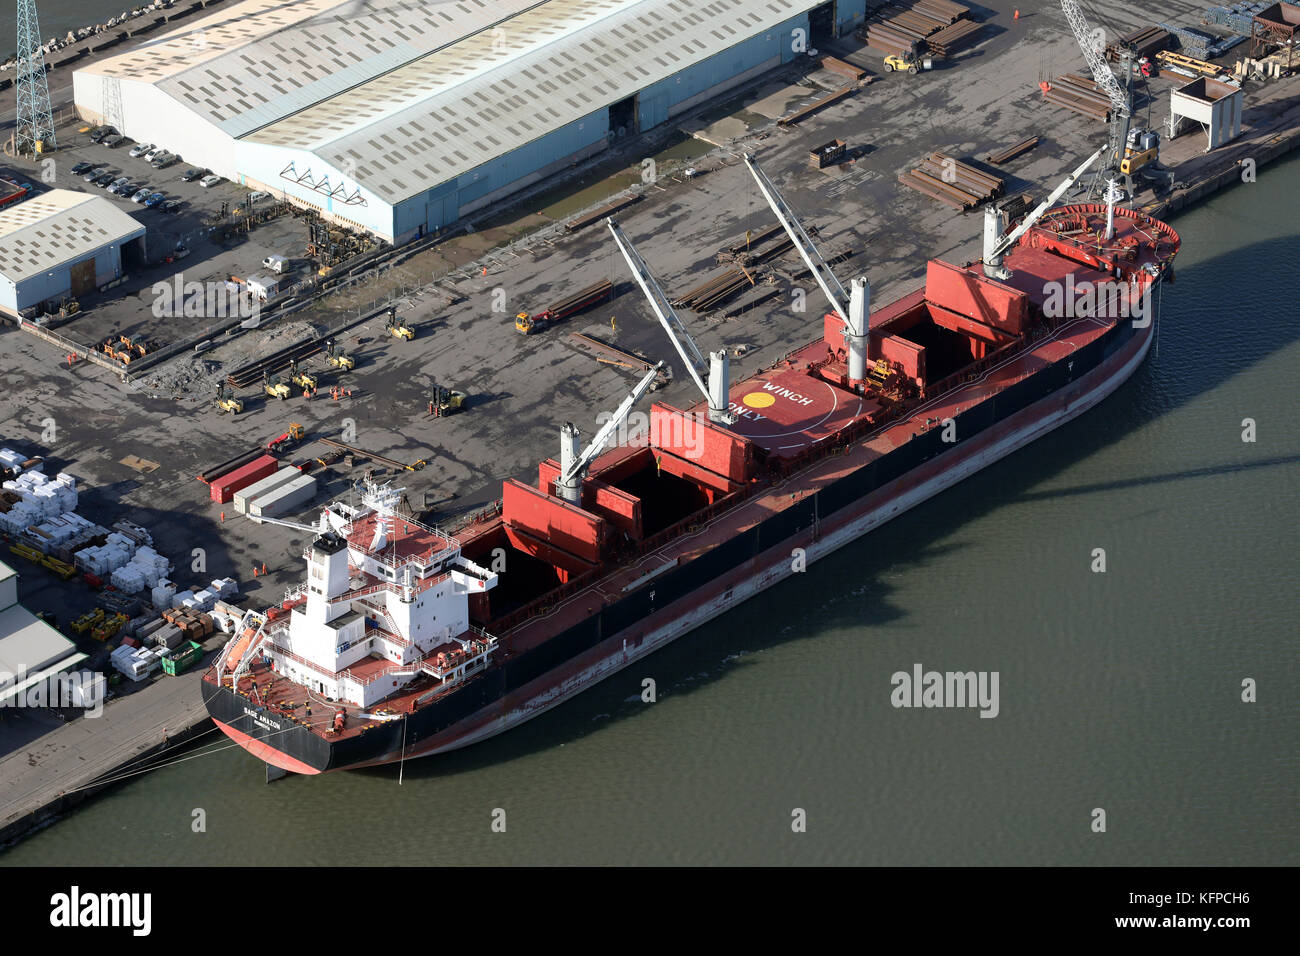 aerial view of MV Sage Amazon at Seaforth Docks, a container terminal, on the River Mersey, UK - Stock Image